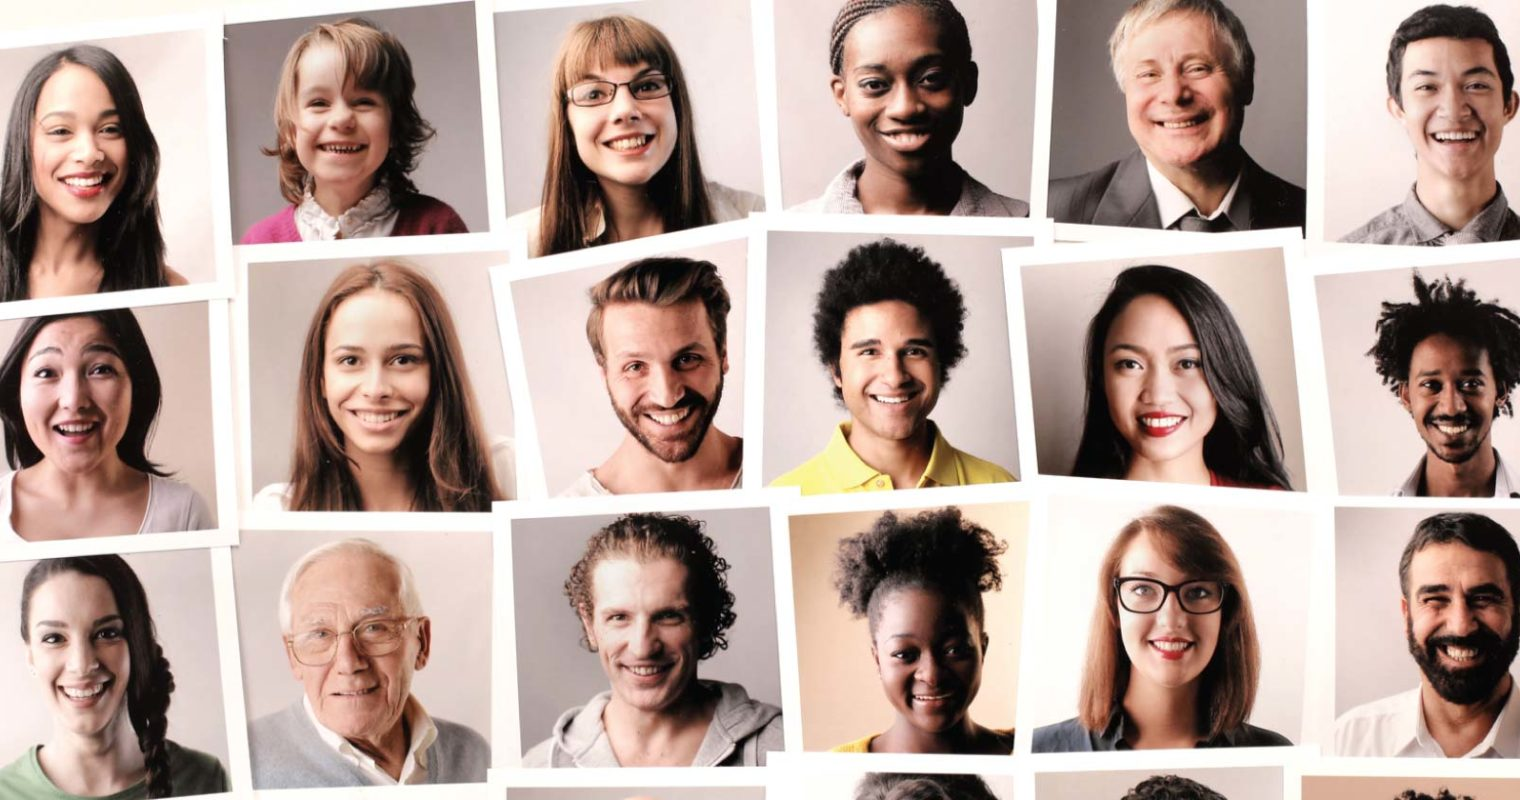 5 Ways Personas Can Improve Your Content Marketing